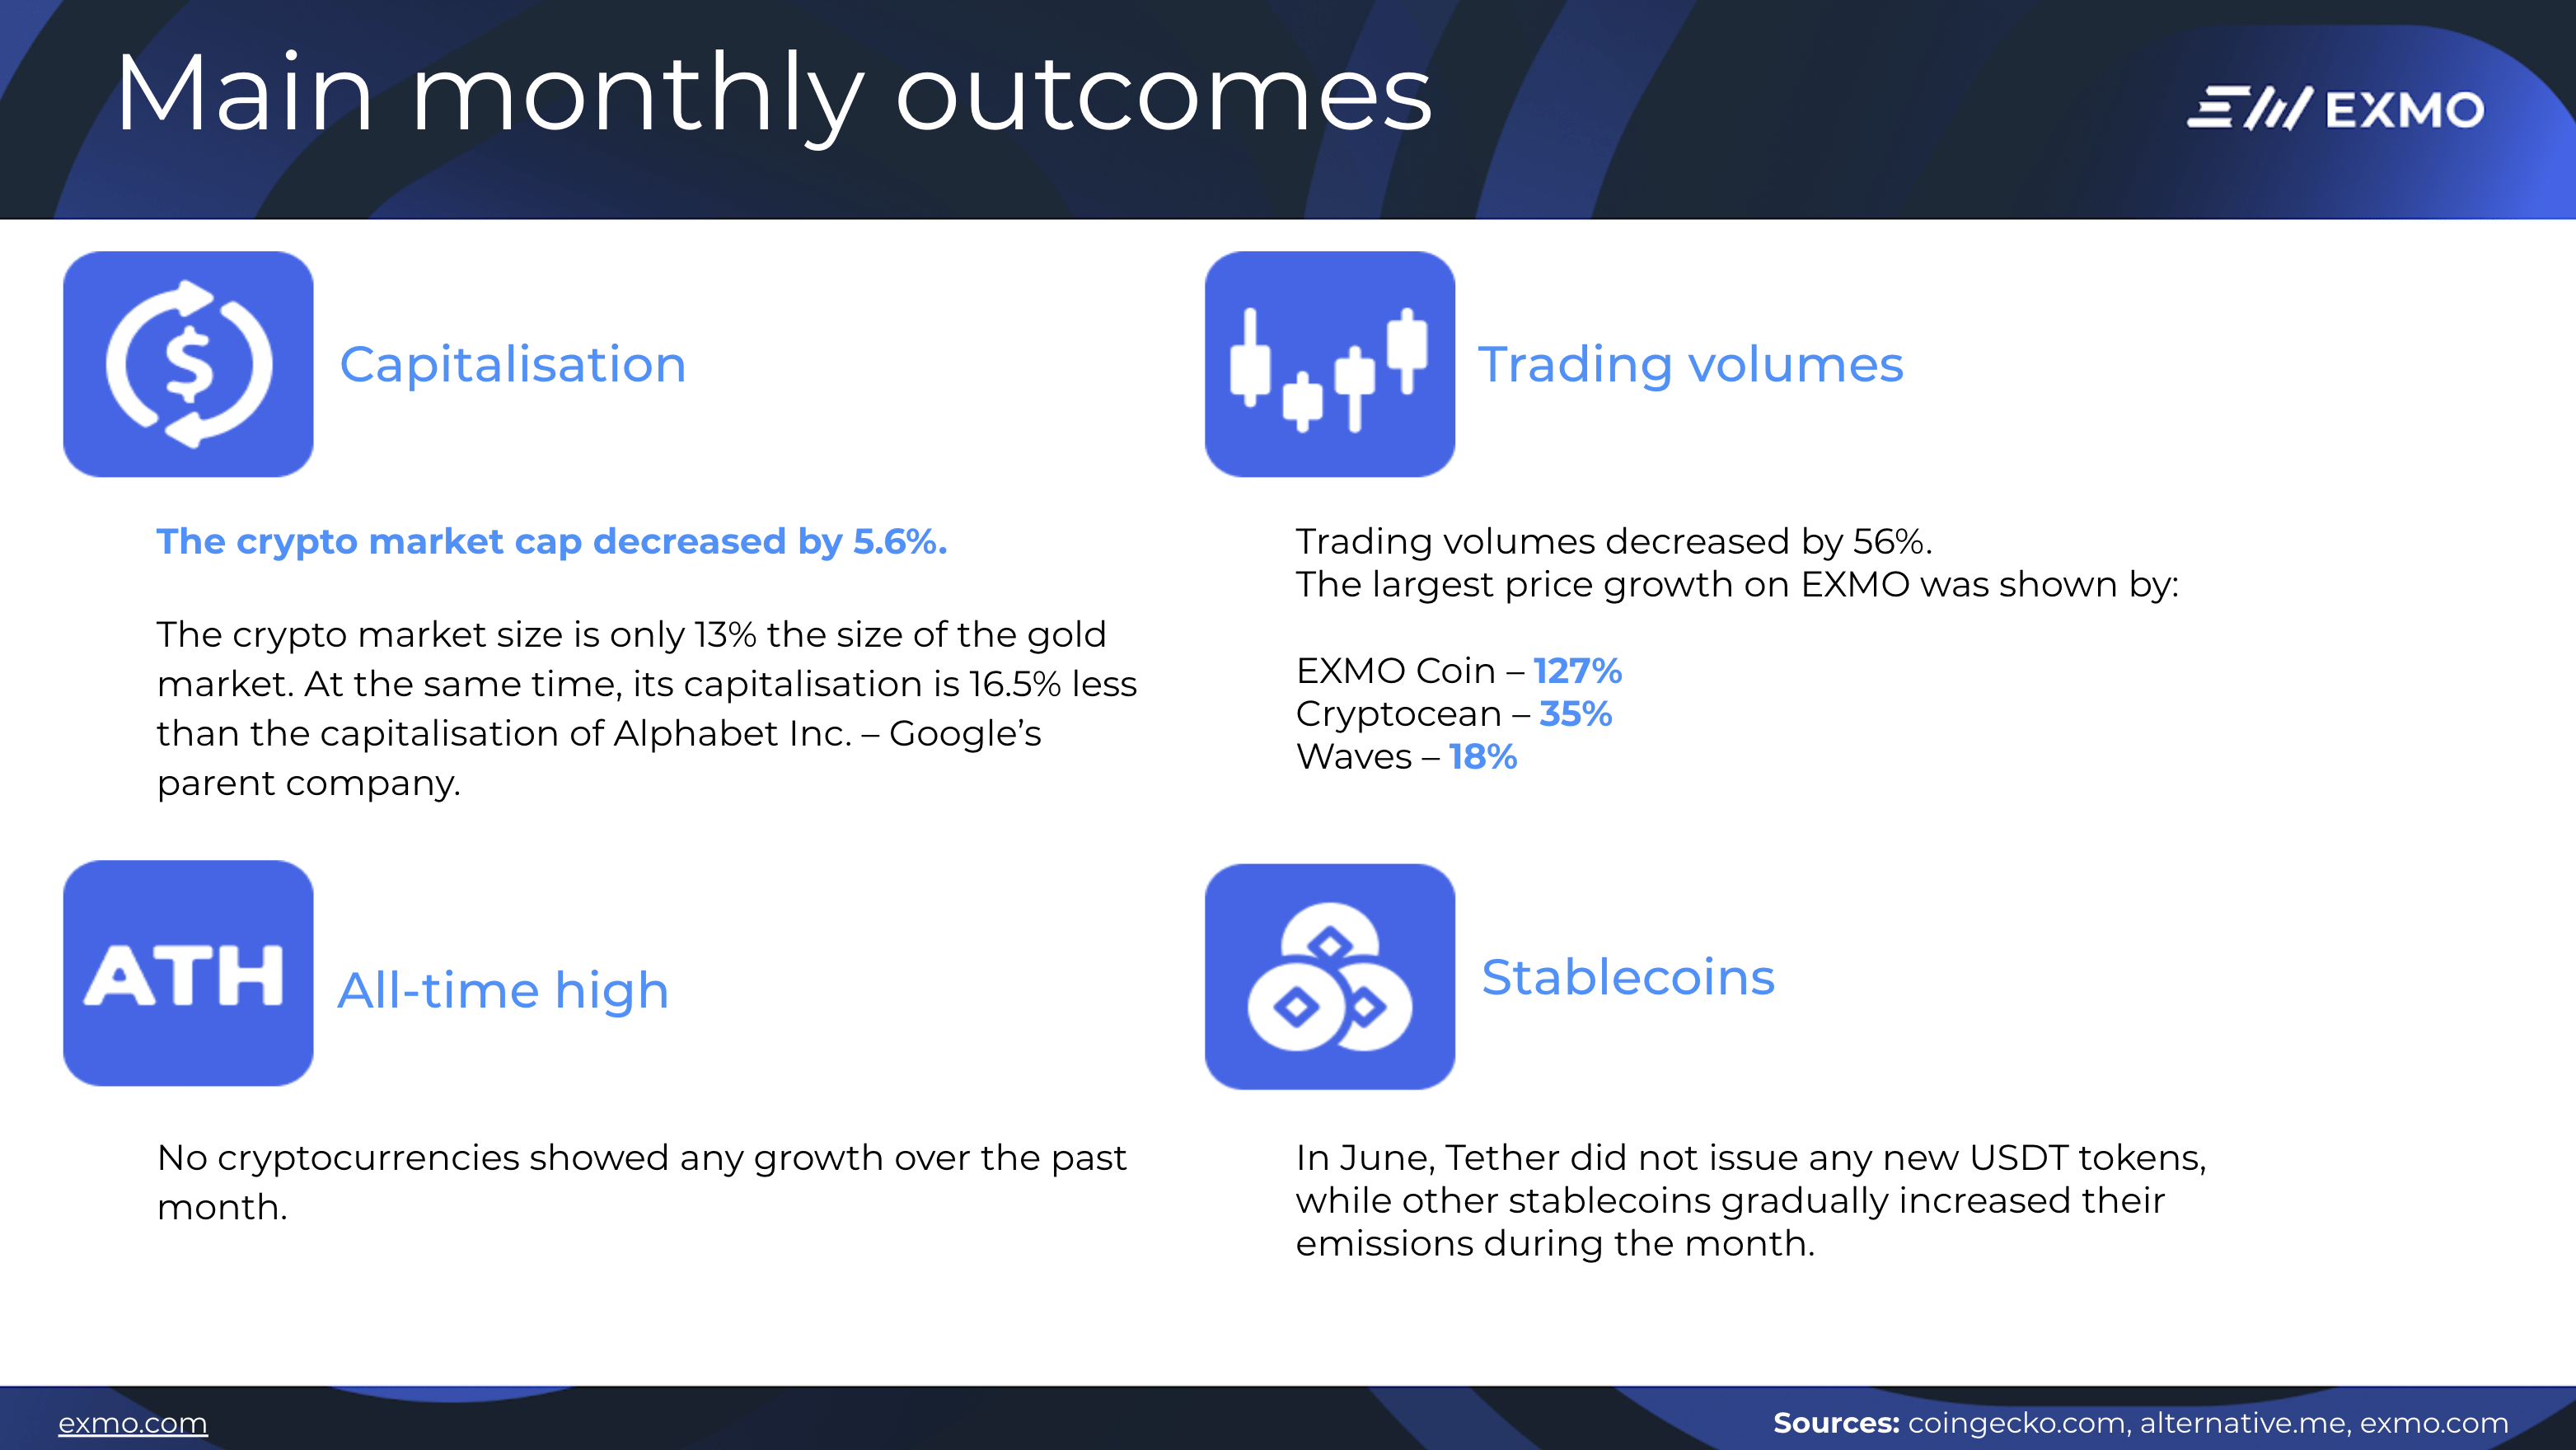 Monthly outcomes